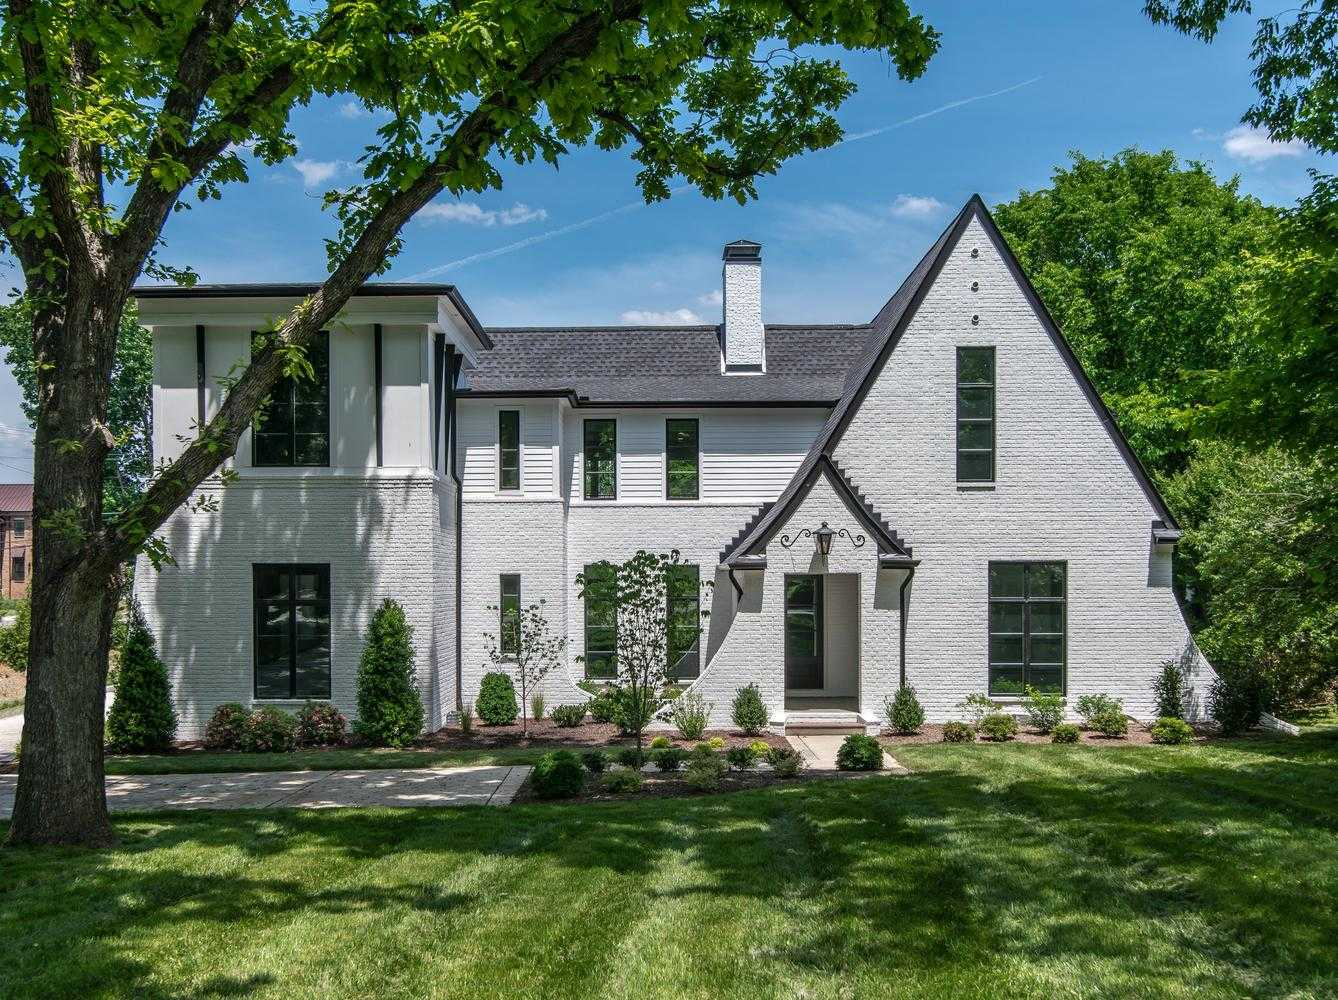 $1,699,900 - 5Br/6Ba -  for Sale in Highlands Of Belle Meade, Nashville